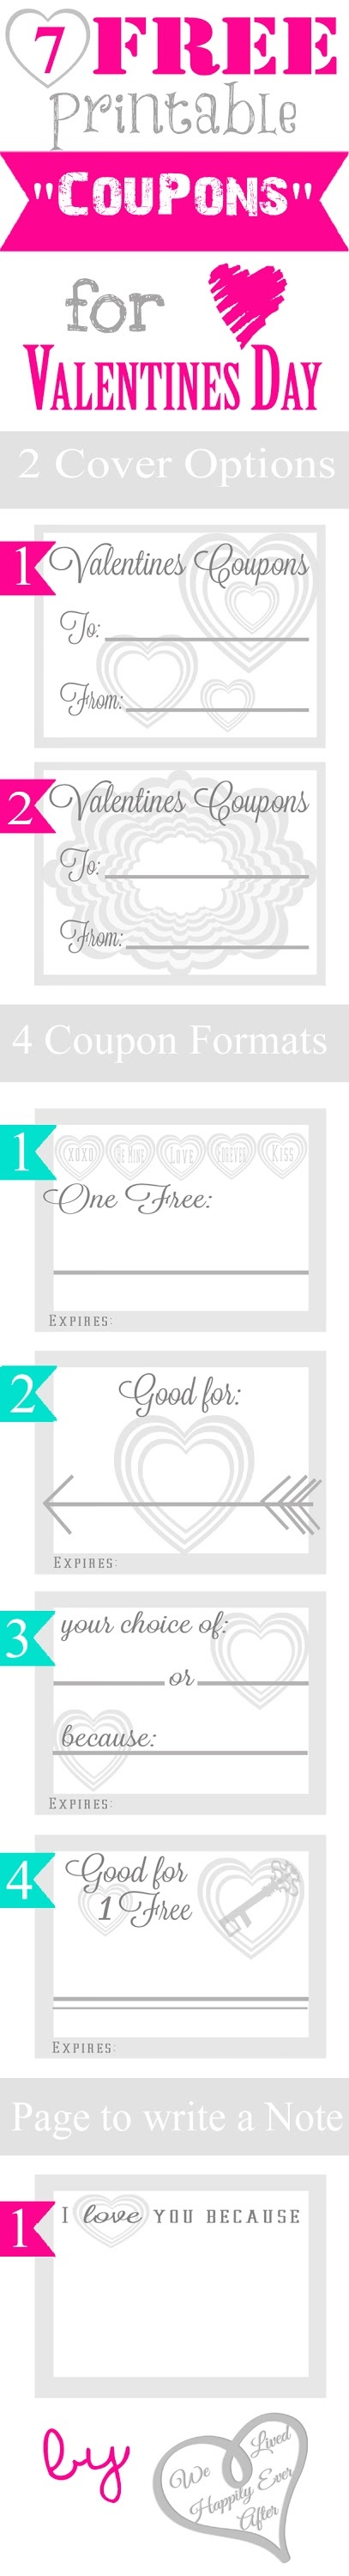 "Free Printable ""Coupons"" for Valentine's Day!"